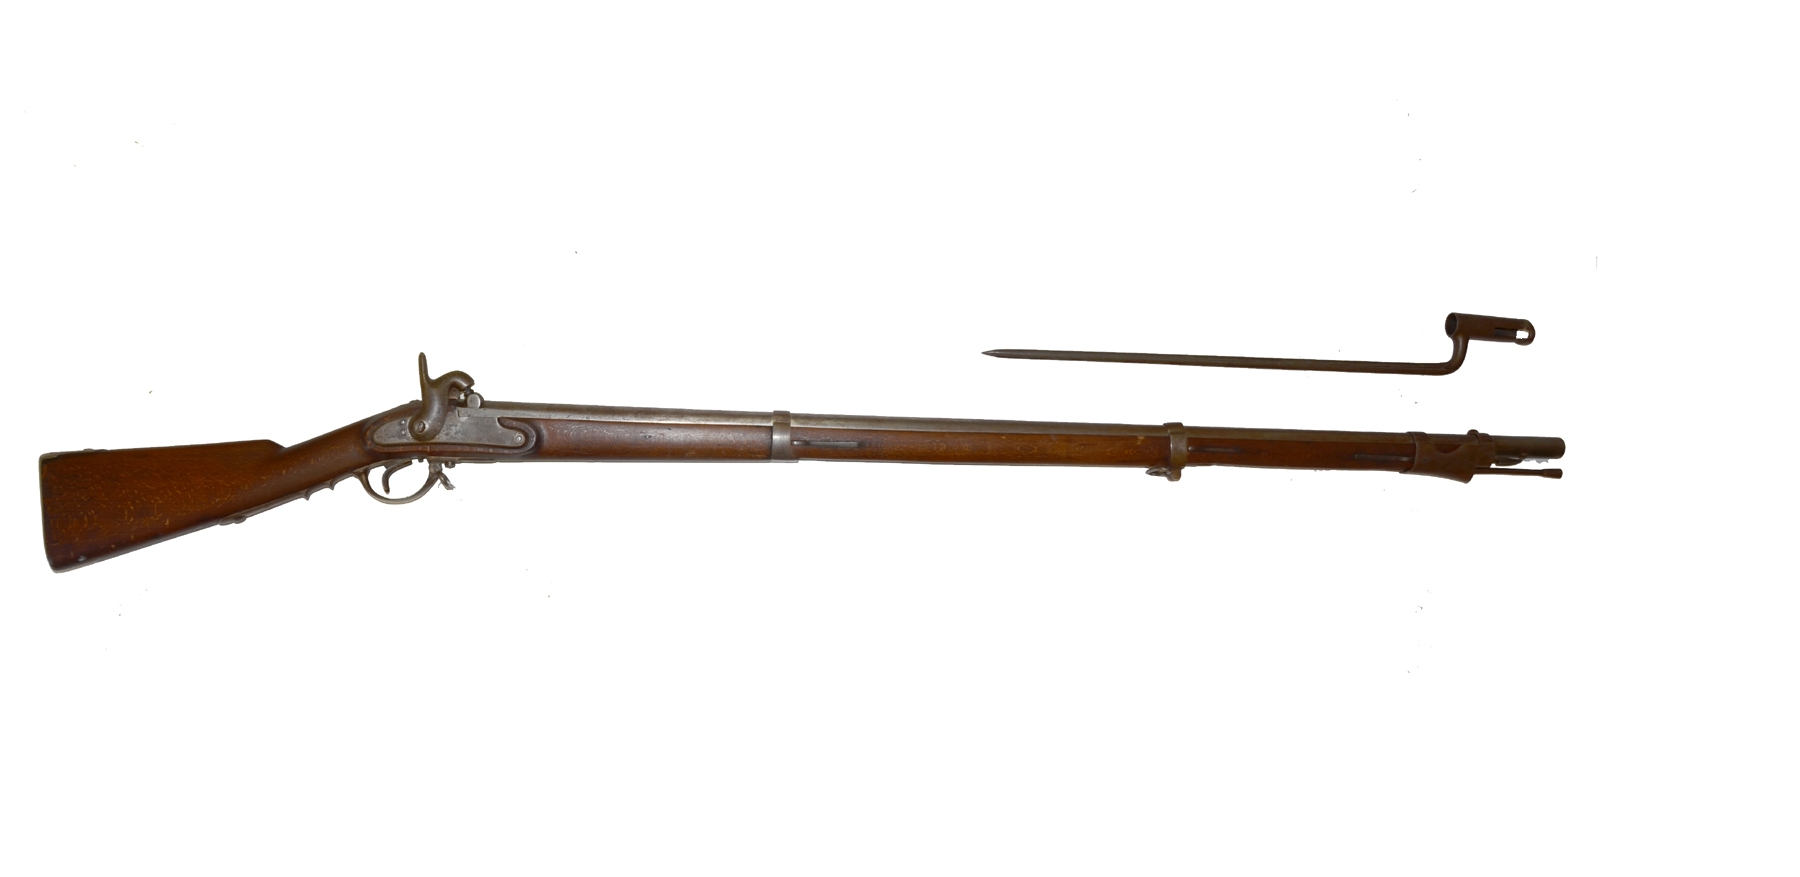 AUSTRIAN MODEL 1842 PERCUSSION RIFLED MUSKET AUSTRIAN MODEL 1842 PERCUSSION RIFLED MUSKET